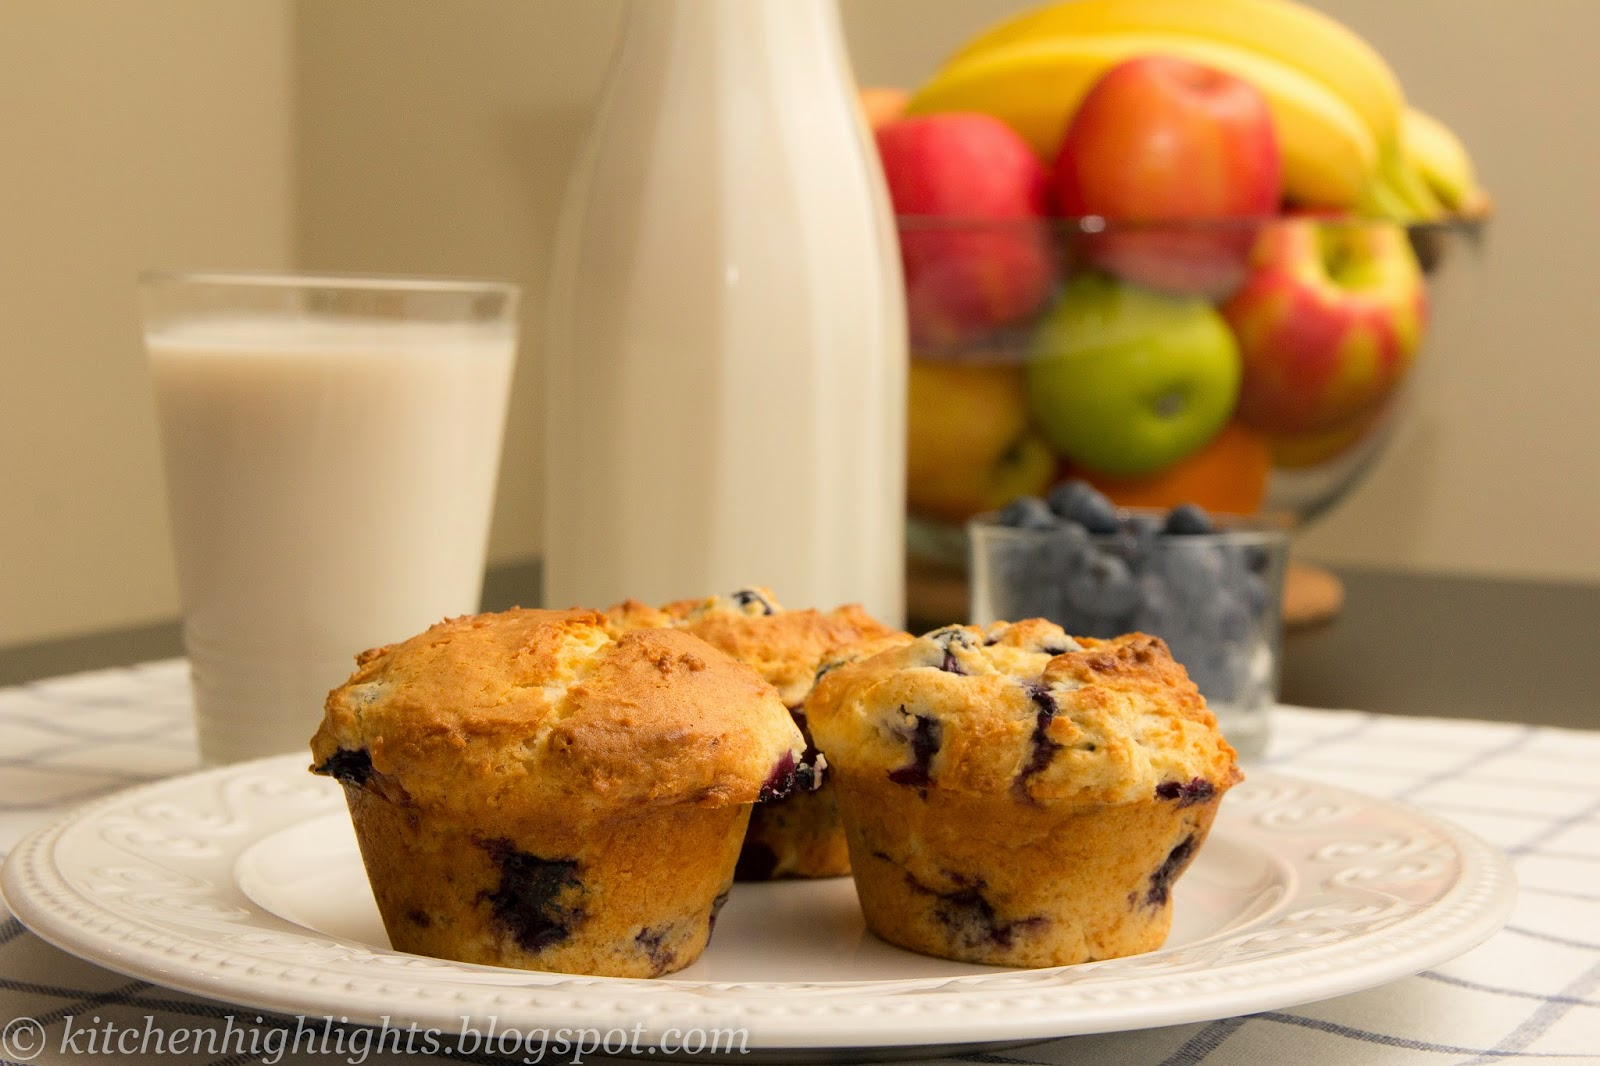 Warm blueberry muffins fresh from the oven are absolutely heavenly